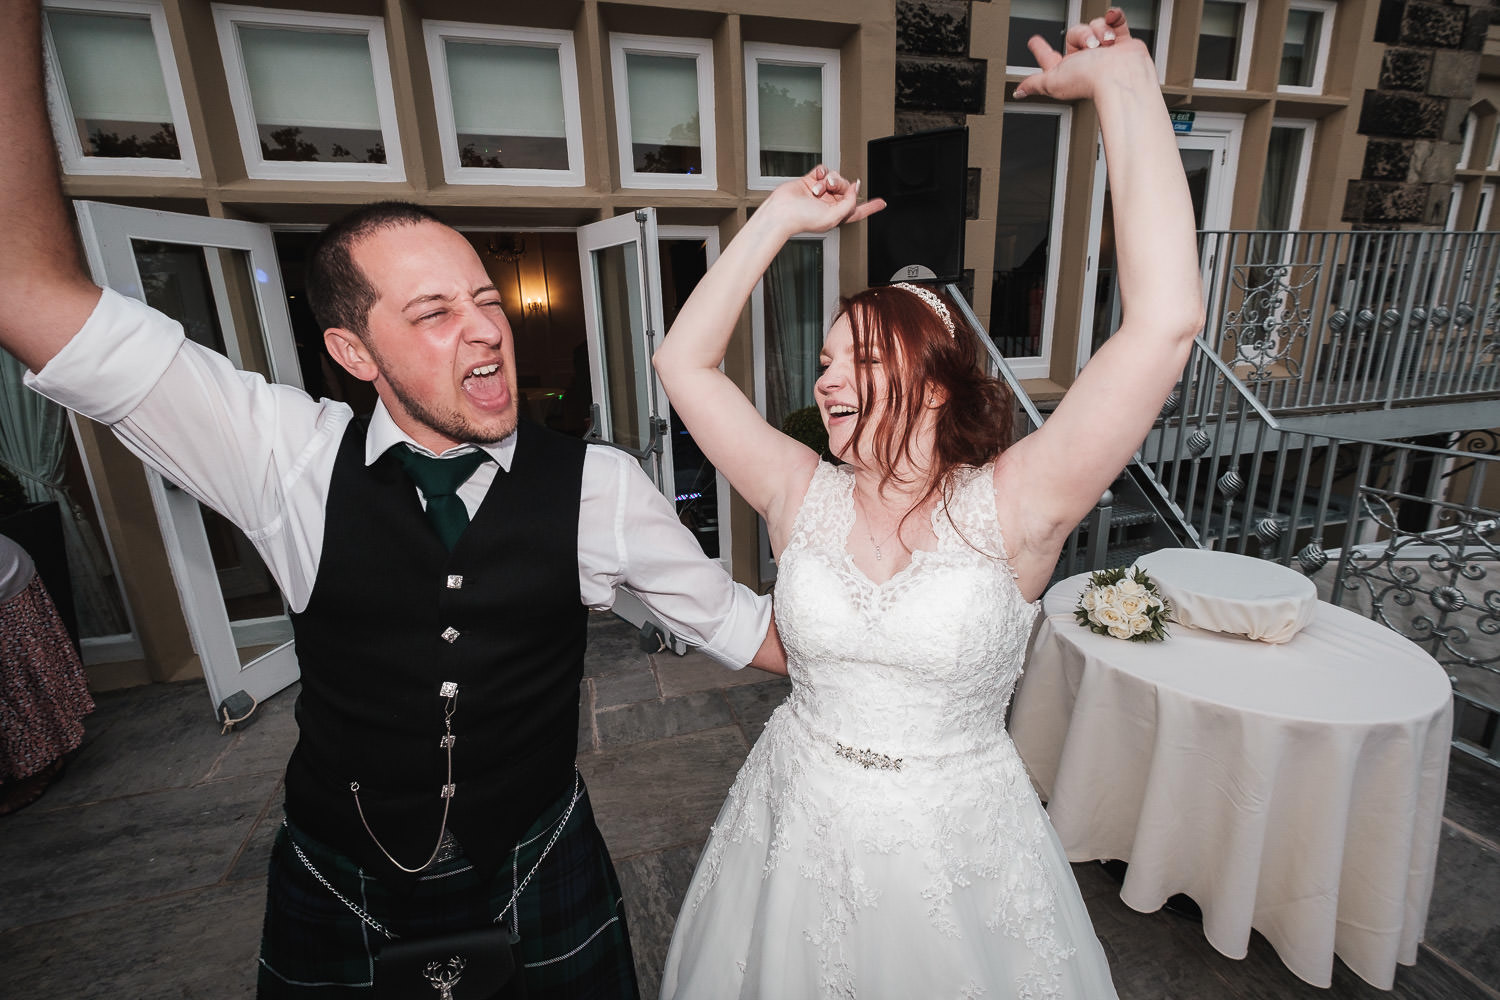 West Tower bride and groom dance at their wedding reception